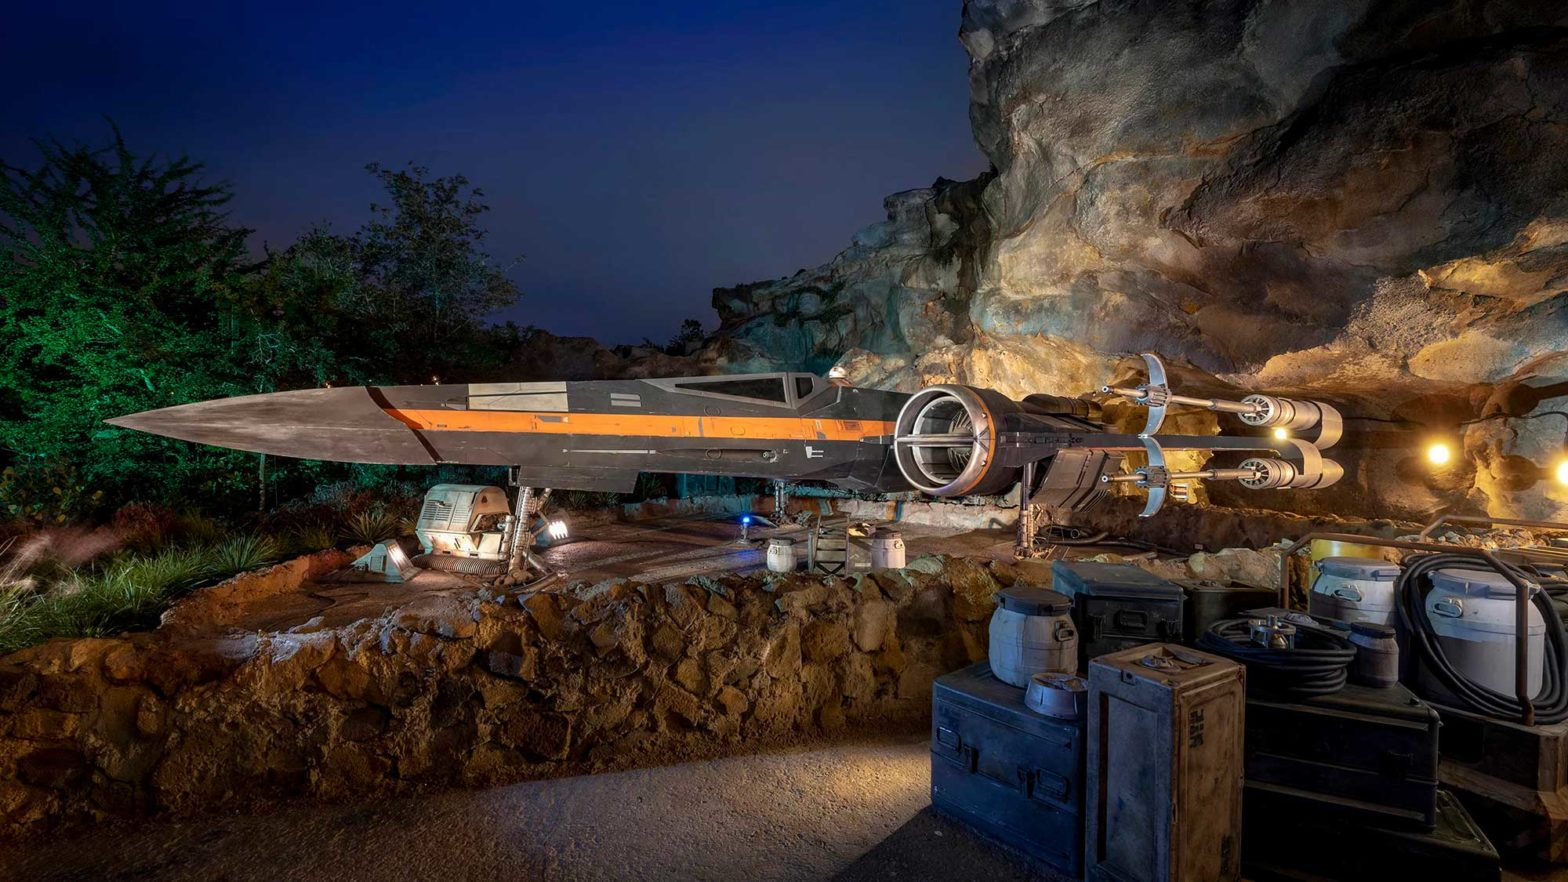 Disneyland New Star Wars Ride Opens